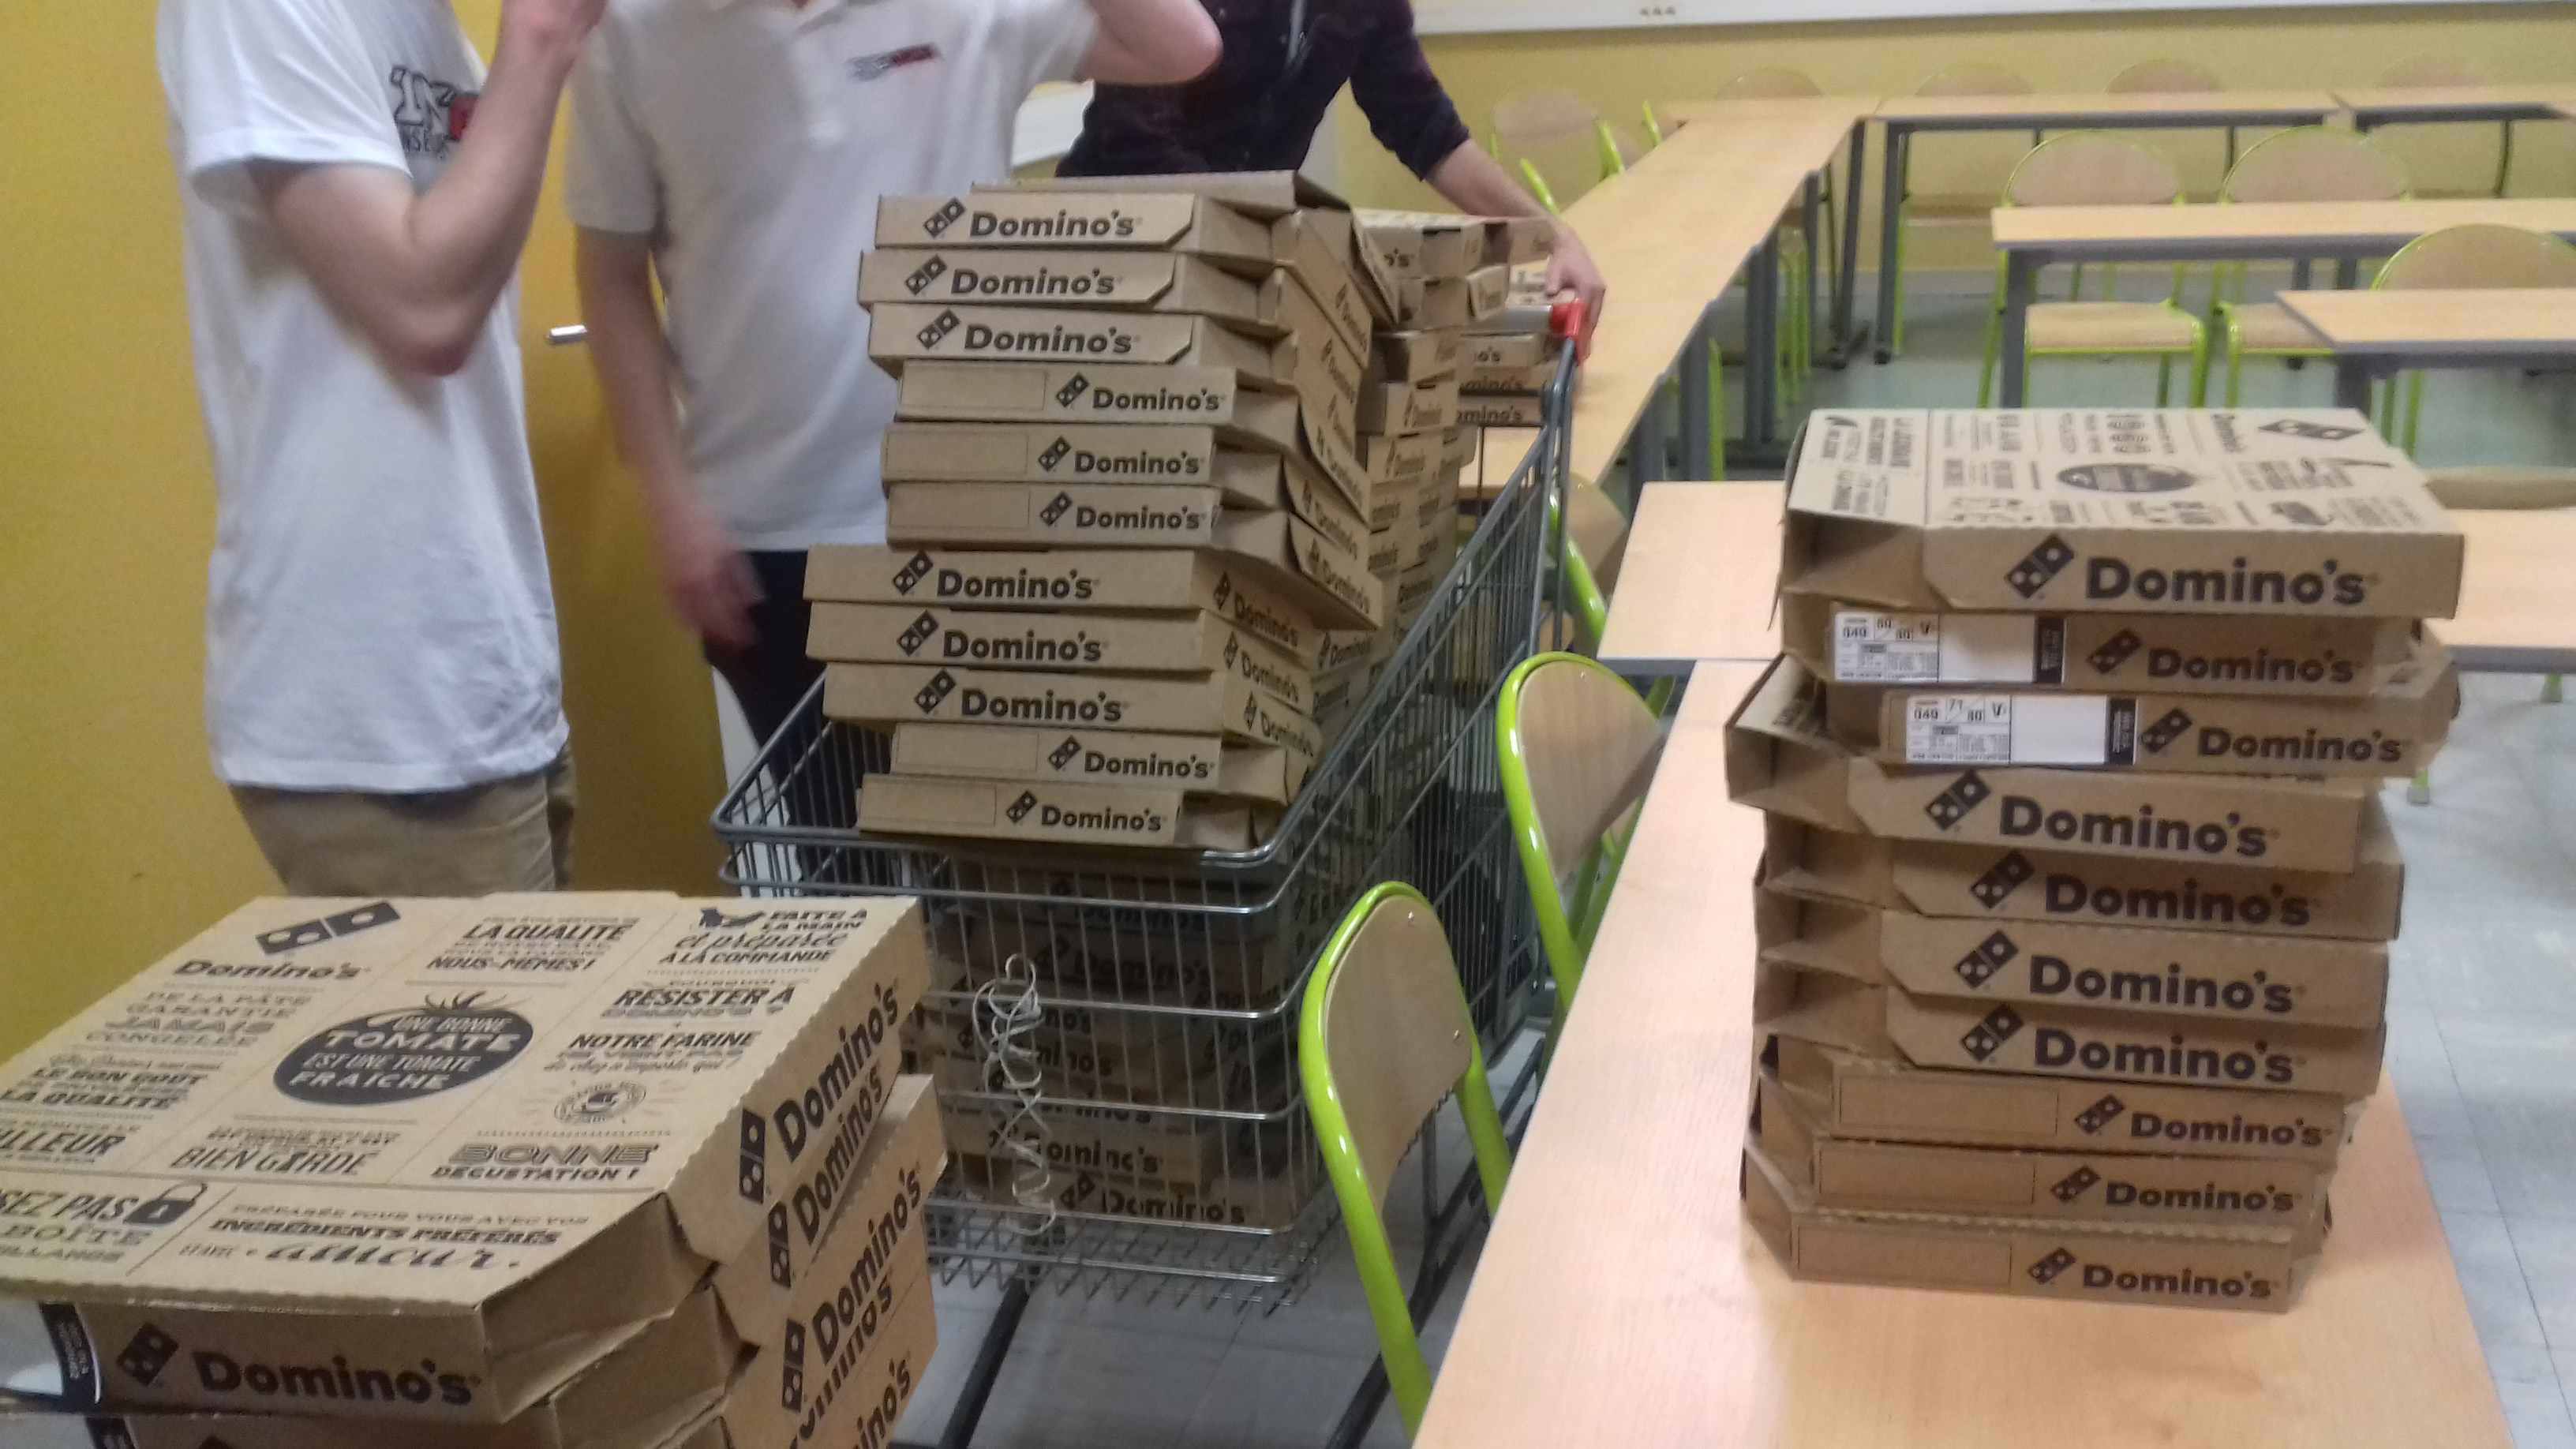 yes, that's 80 pizzas